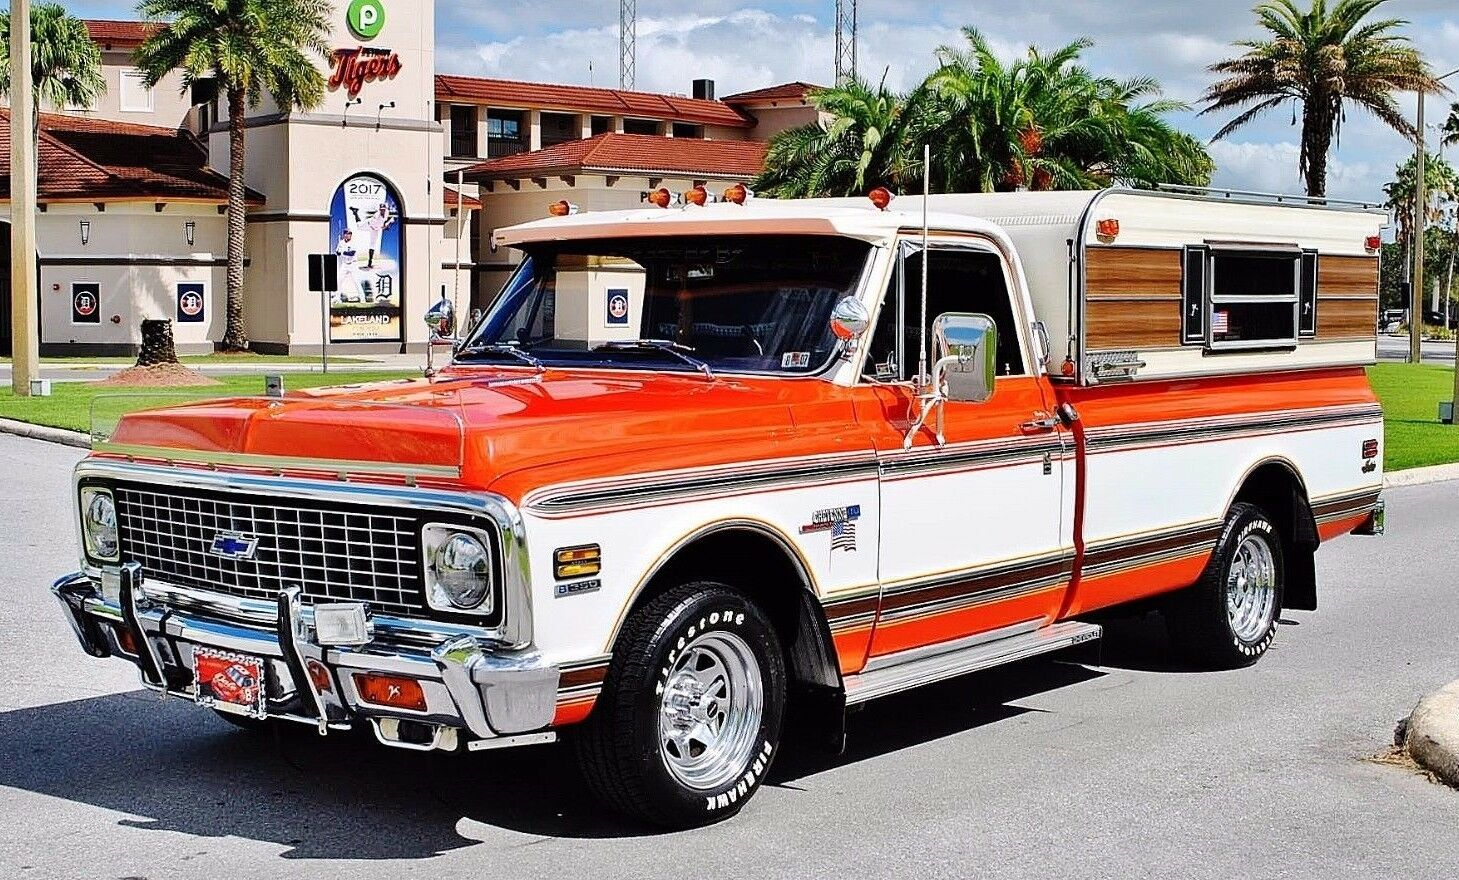 1972 Chevrolet C-10 Custom Pickup Fully Restored Show Truck Power Steering Power Brakes 350 V8 Automatic Fully Detailed Engine Bay